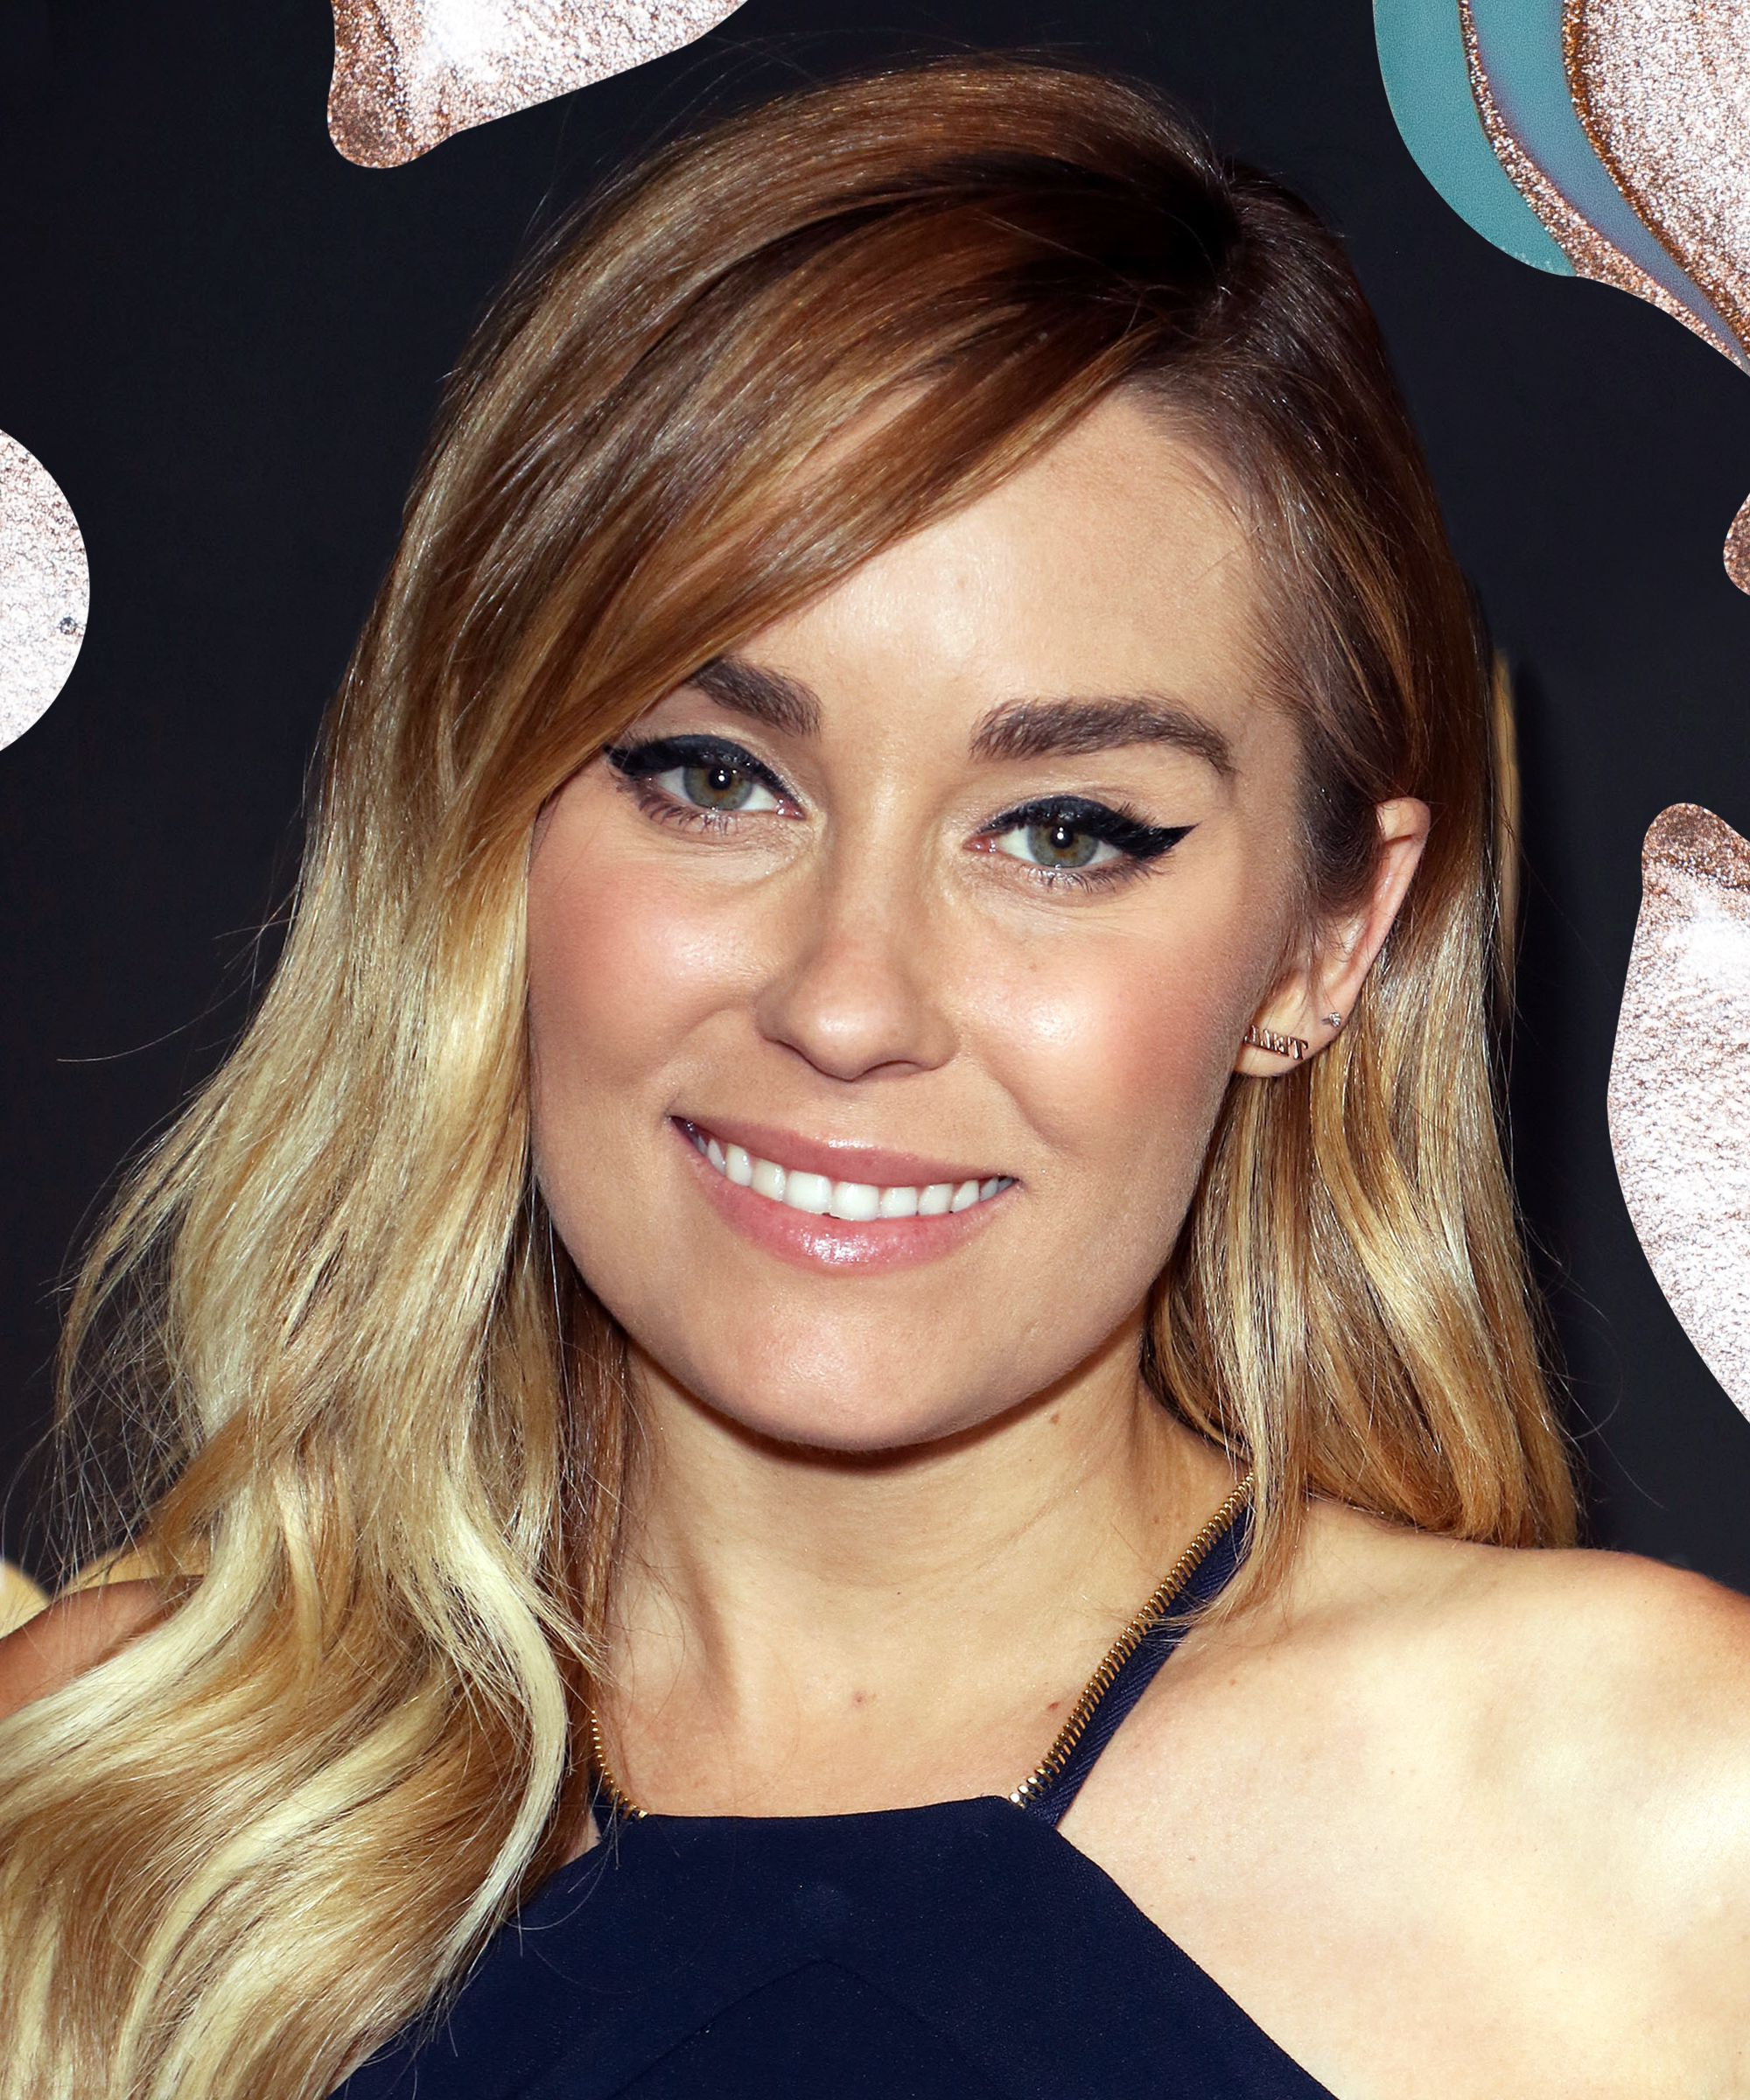 Lauren Conrad Cut Her Hair Short, New Style Trend Pertaining To Lauren Conrad Short Haircuts (View 21 of 25)